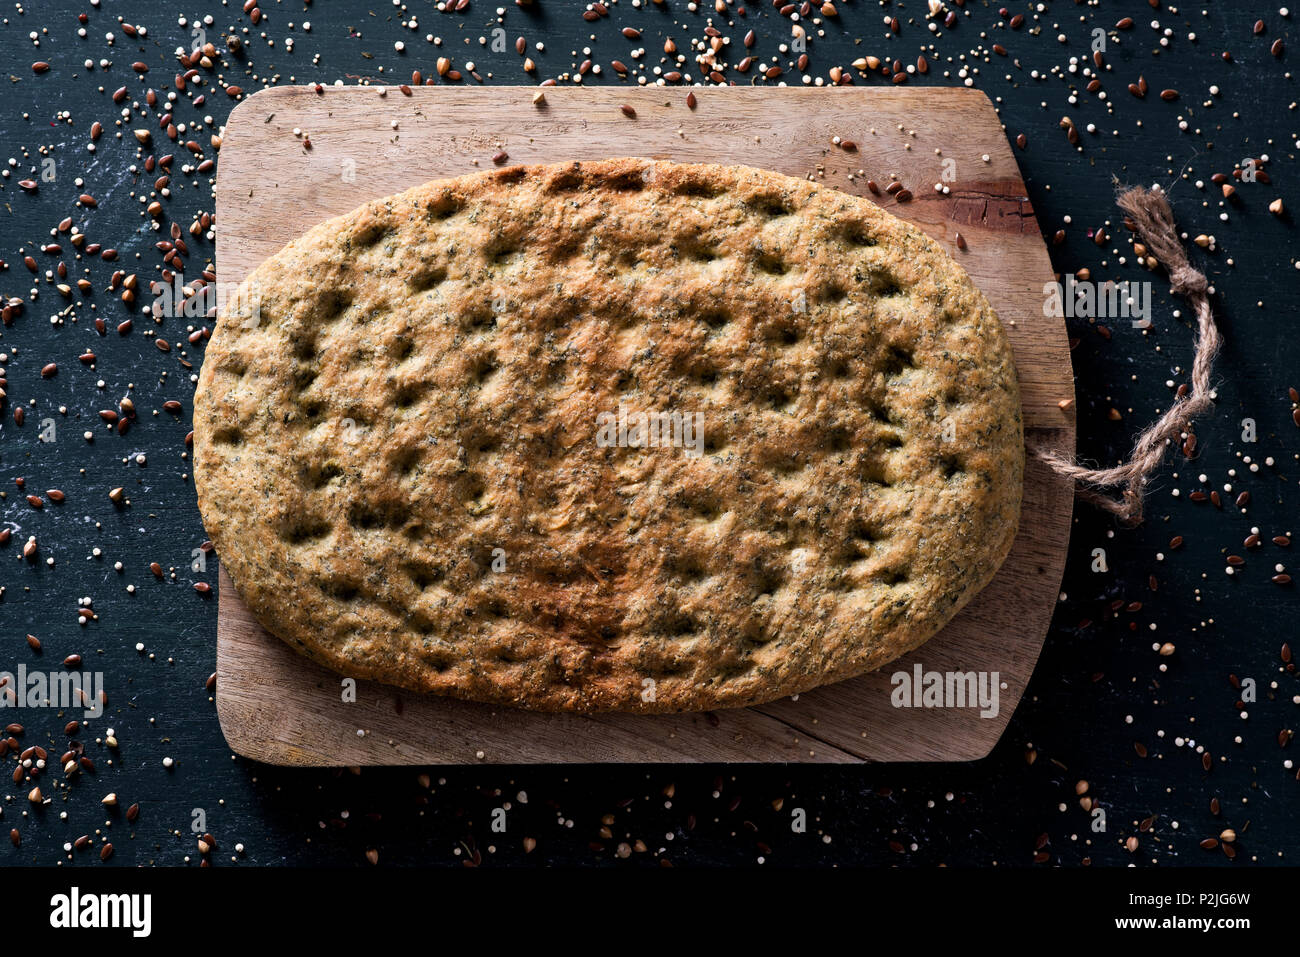 high angle view of a kale flatbread on a chopping board, placed on a dark green rustic wooden table - Stock Image